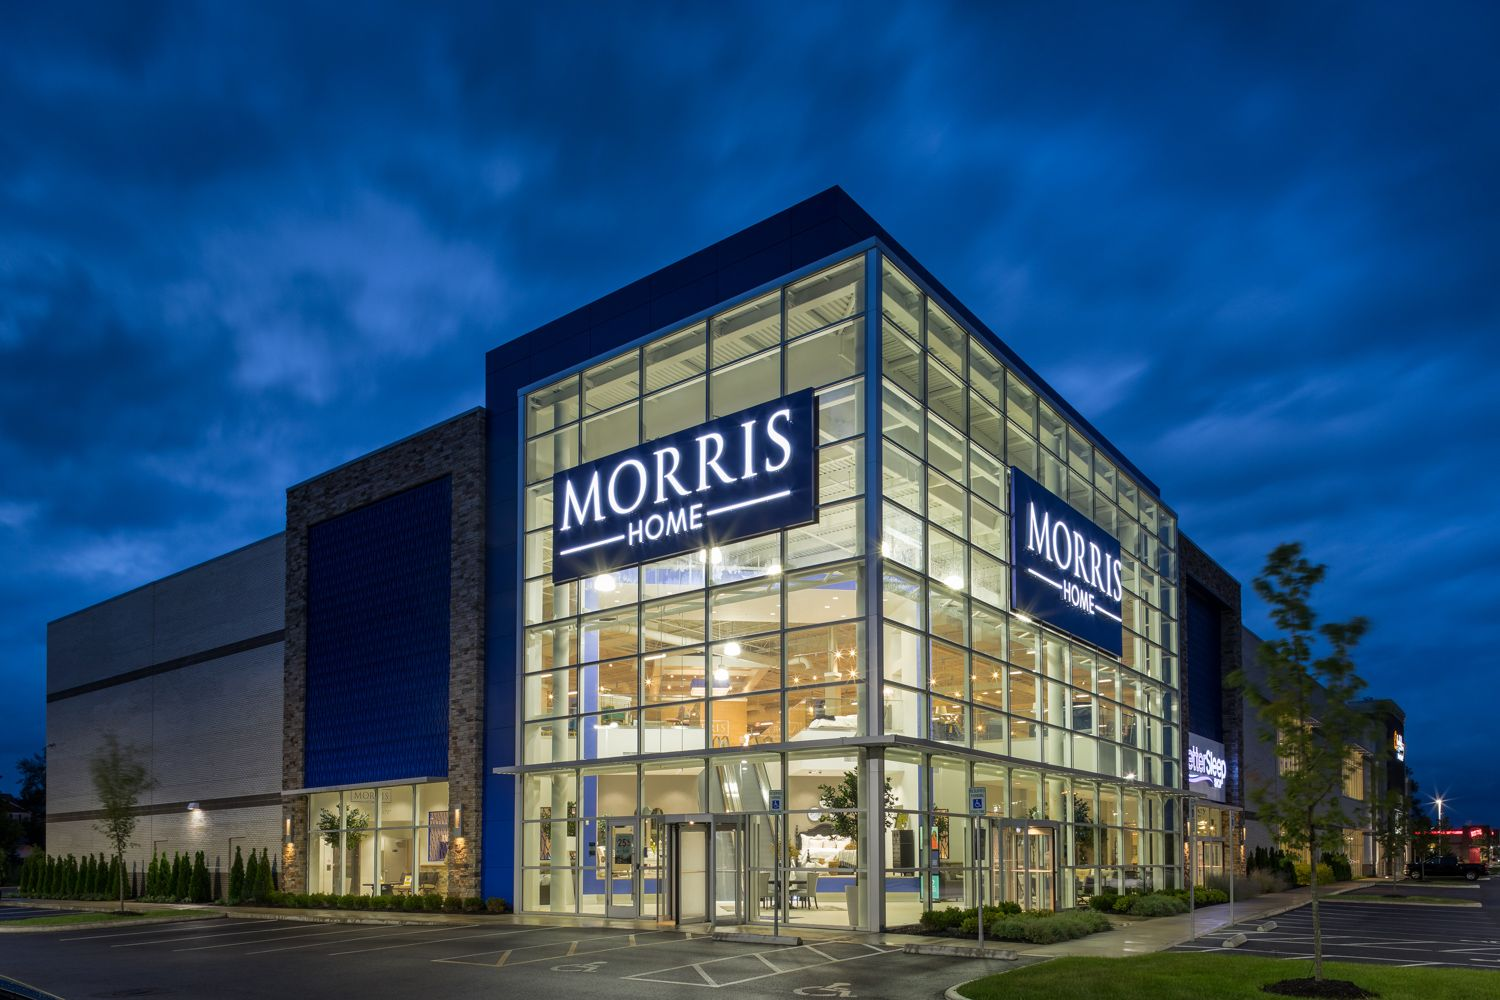 Architectural photographer Morris Home Furnishings Columbus Ohio